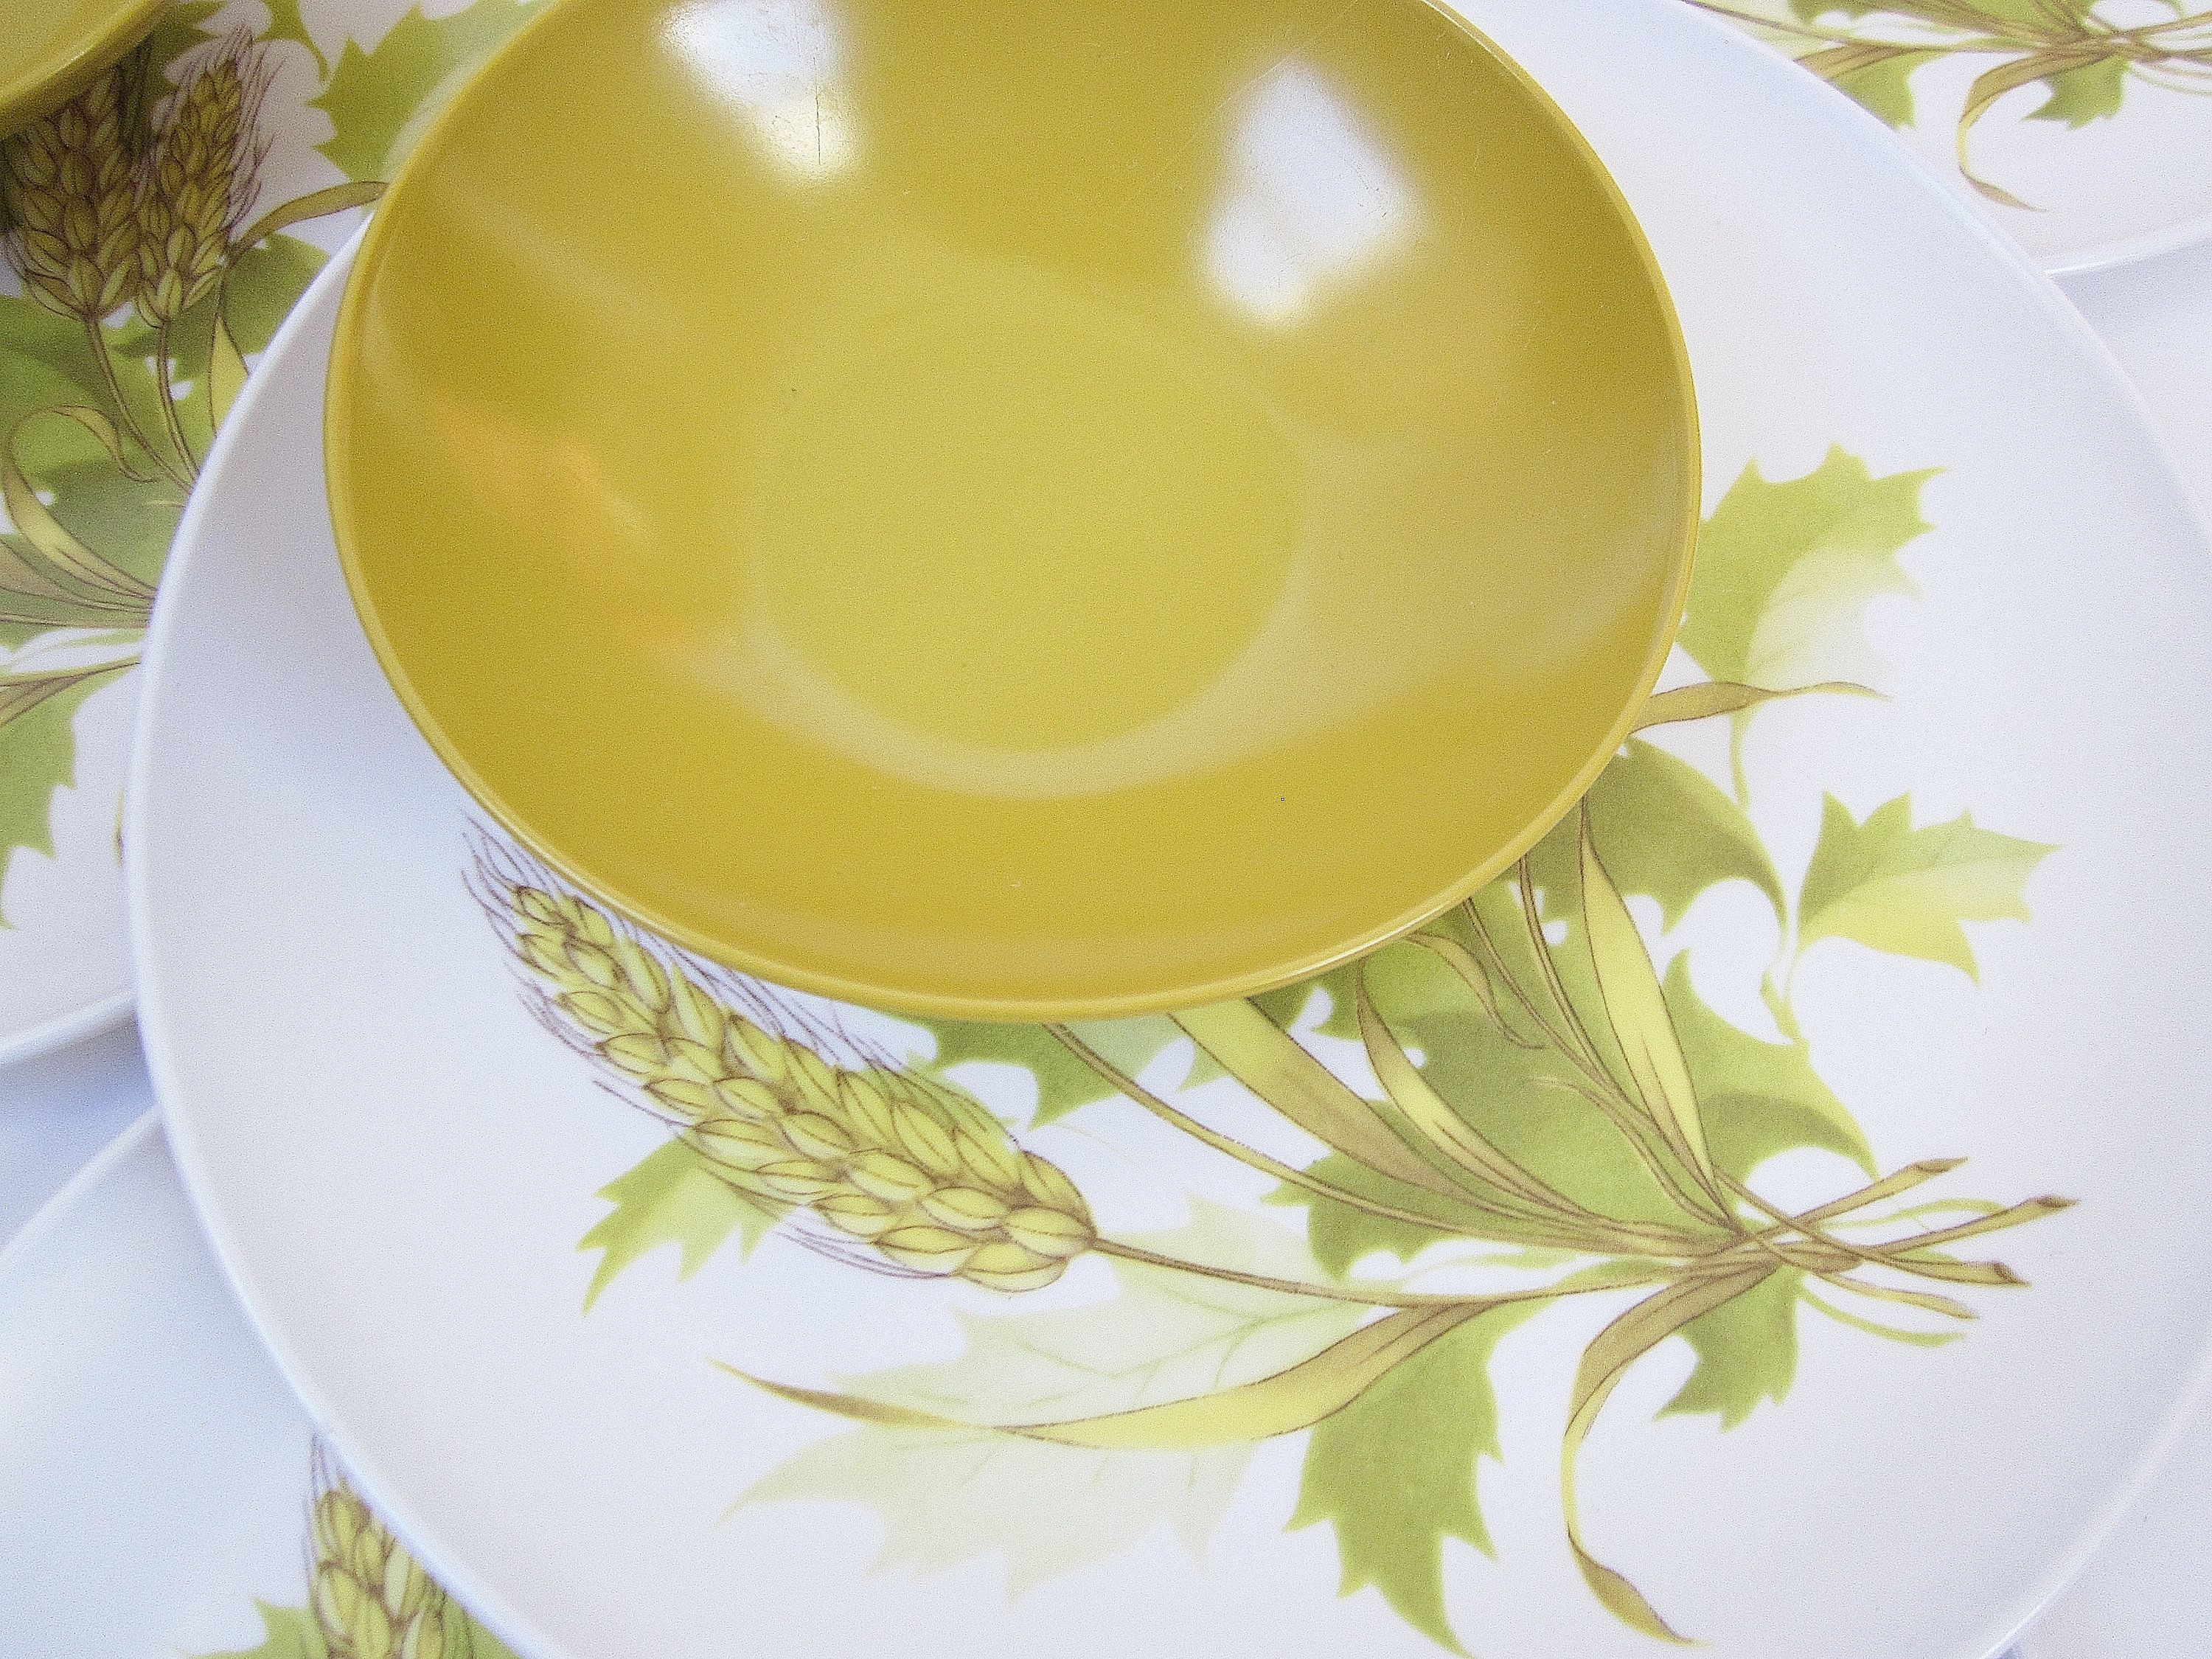 Harvest Wheat & Golden Yellow Plastic Plates And Bowls Set Mid Century Melamine Or Melmac Style Serving Dishes 1960's Casual Dinnerware